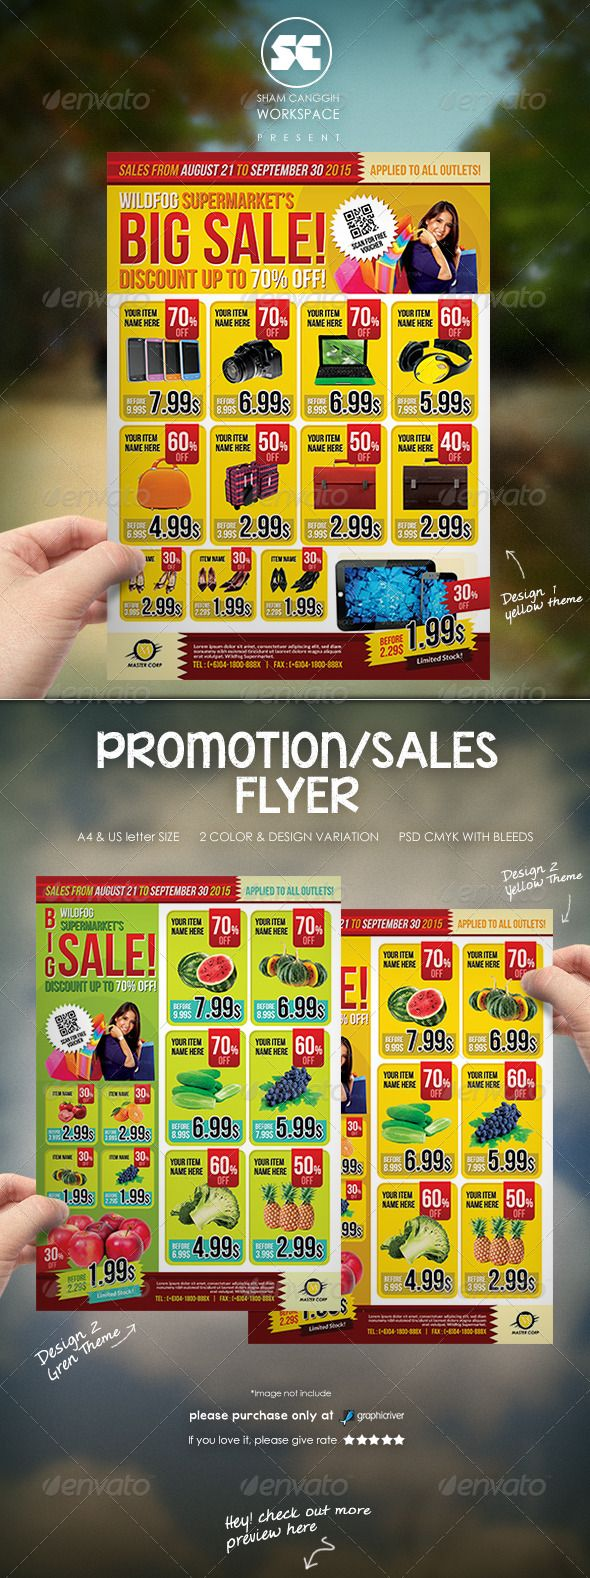 best images about psd s promotion flyer template on 17 best images about psd s promotion flyer template flyer template the smart and computer s